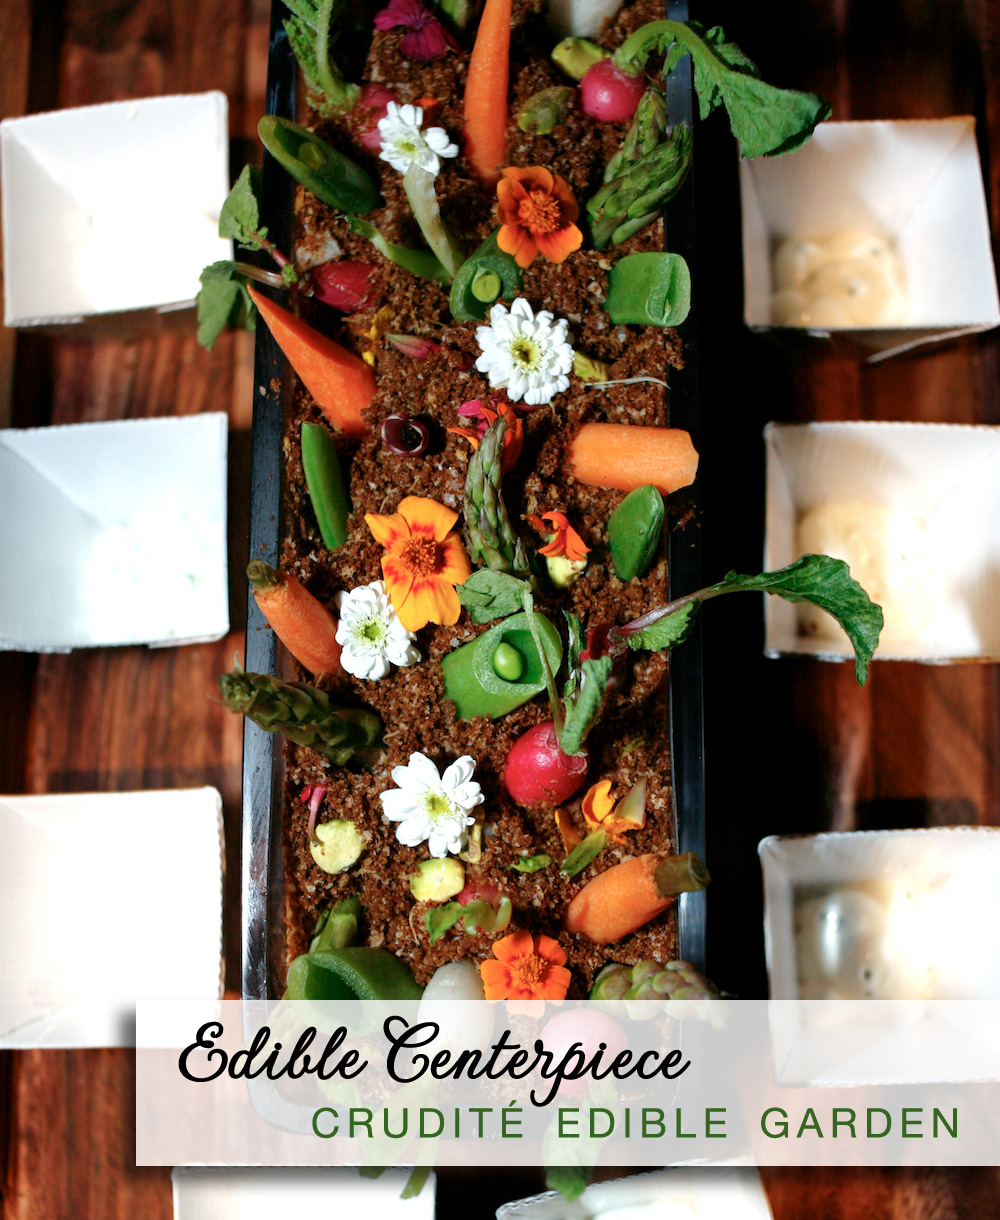 Edible Wedding Centerpieces : crudité edible garden with pumpernickel dirt | by Josh Tierney